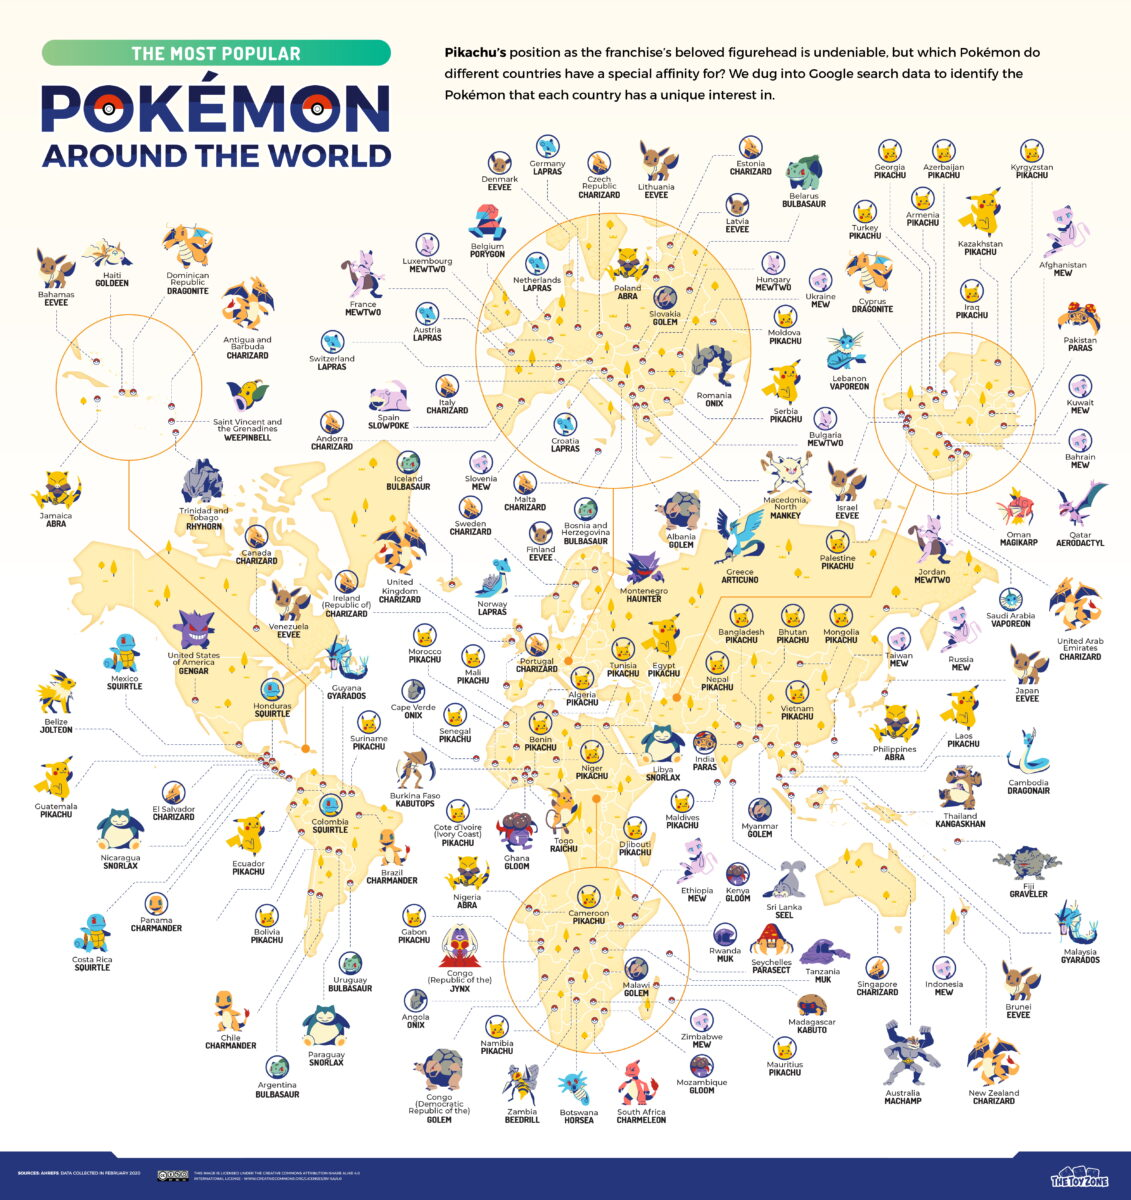 Map of the world and popular Pokemon